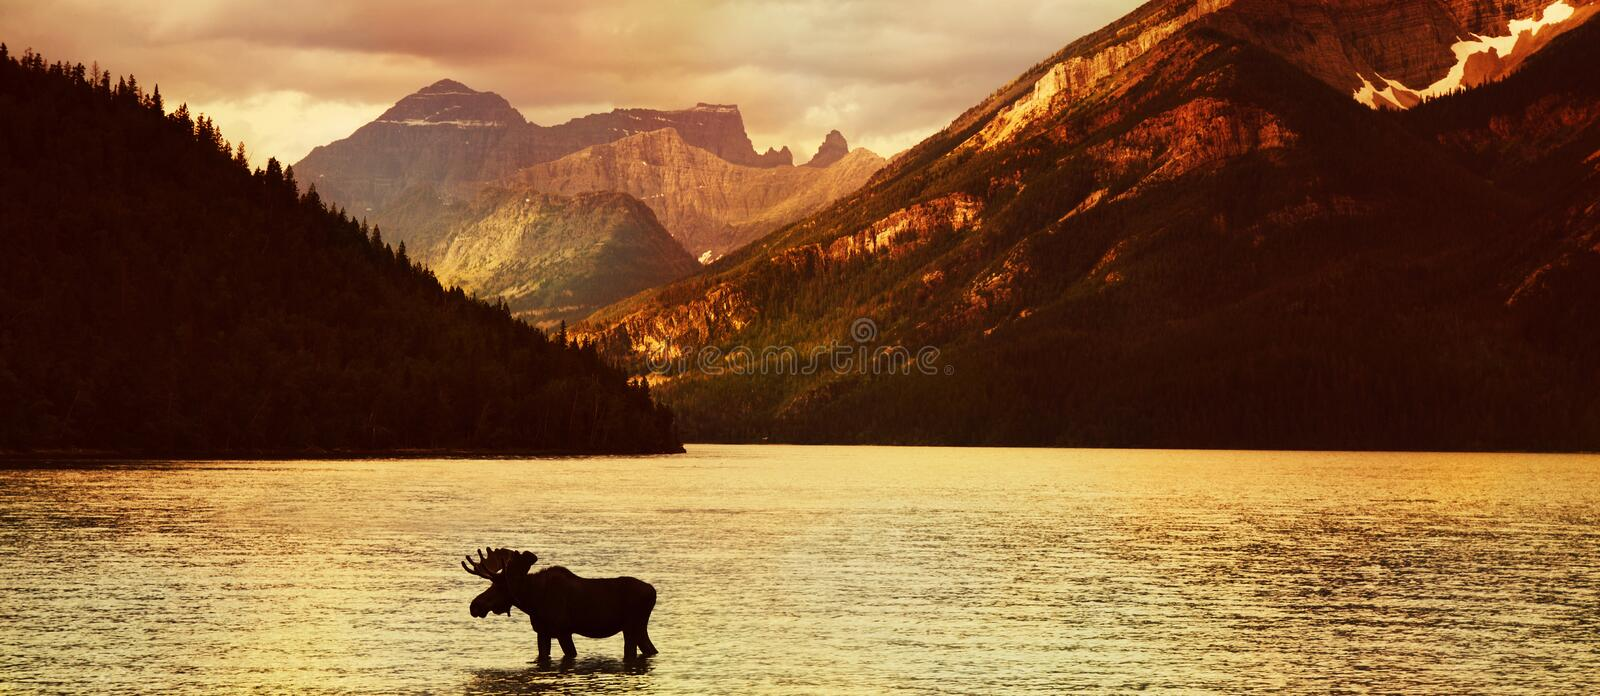 Moose in lake at sunset. Scenic view of Waterton Lakes National Park at sunset with moose silhouetted in foreground, Alberta, Canada royalty free stock photos